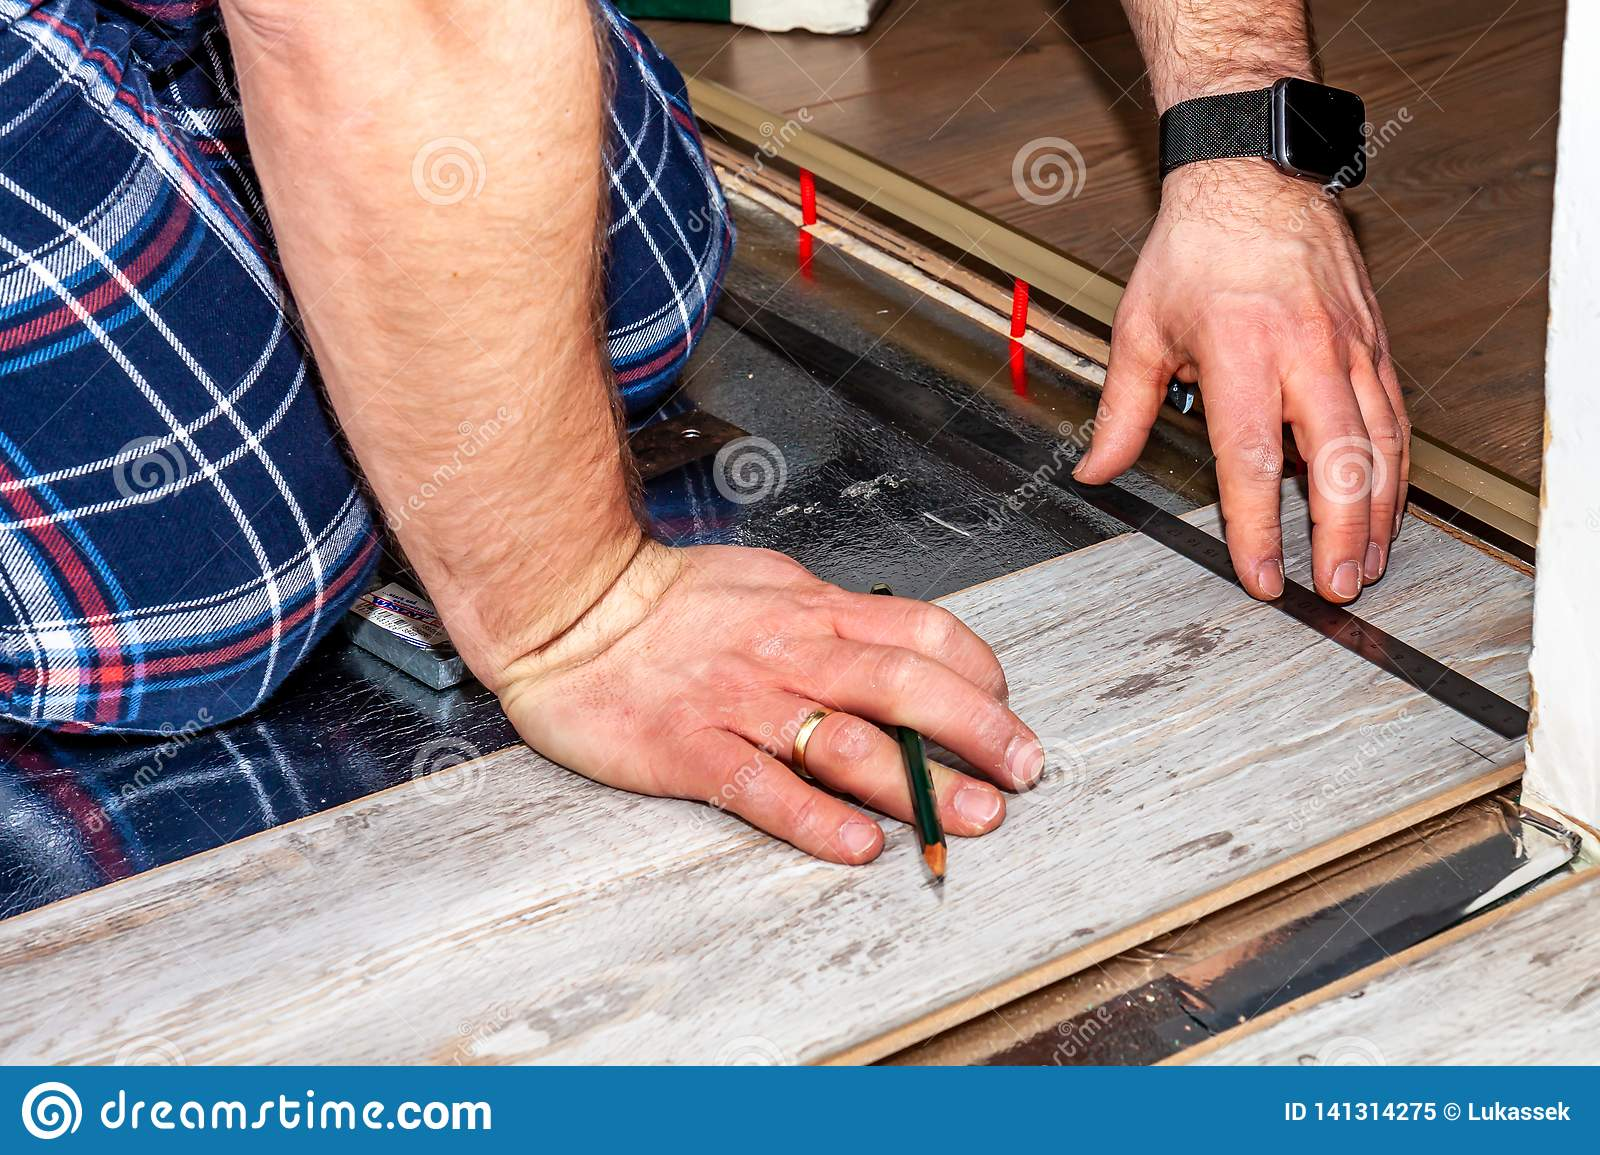 Man using measuring elbow and pencil while installing new wooden laminate flooring at home.